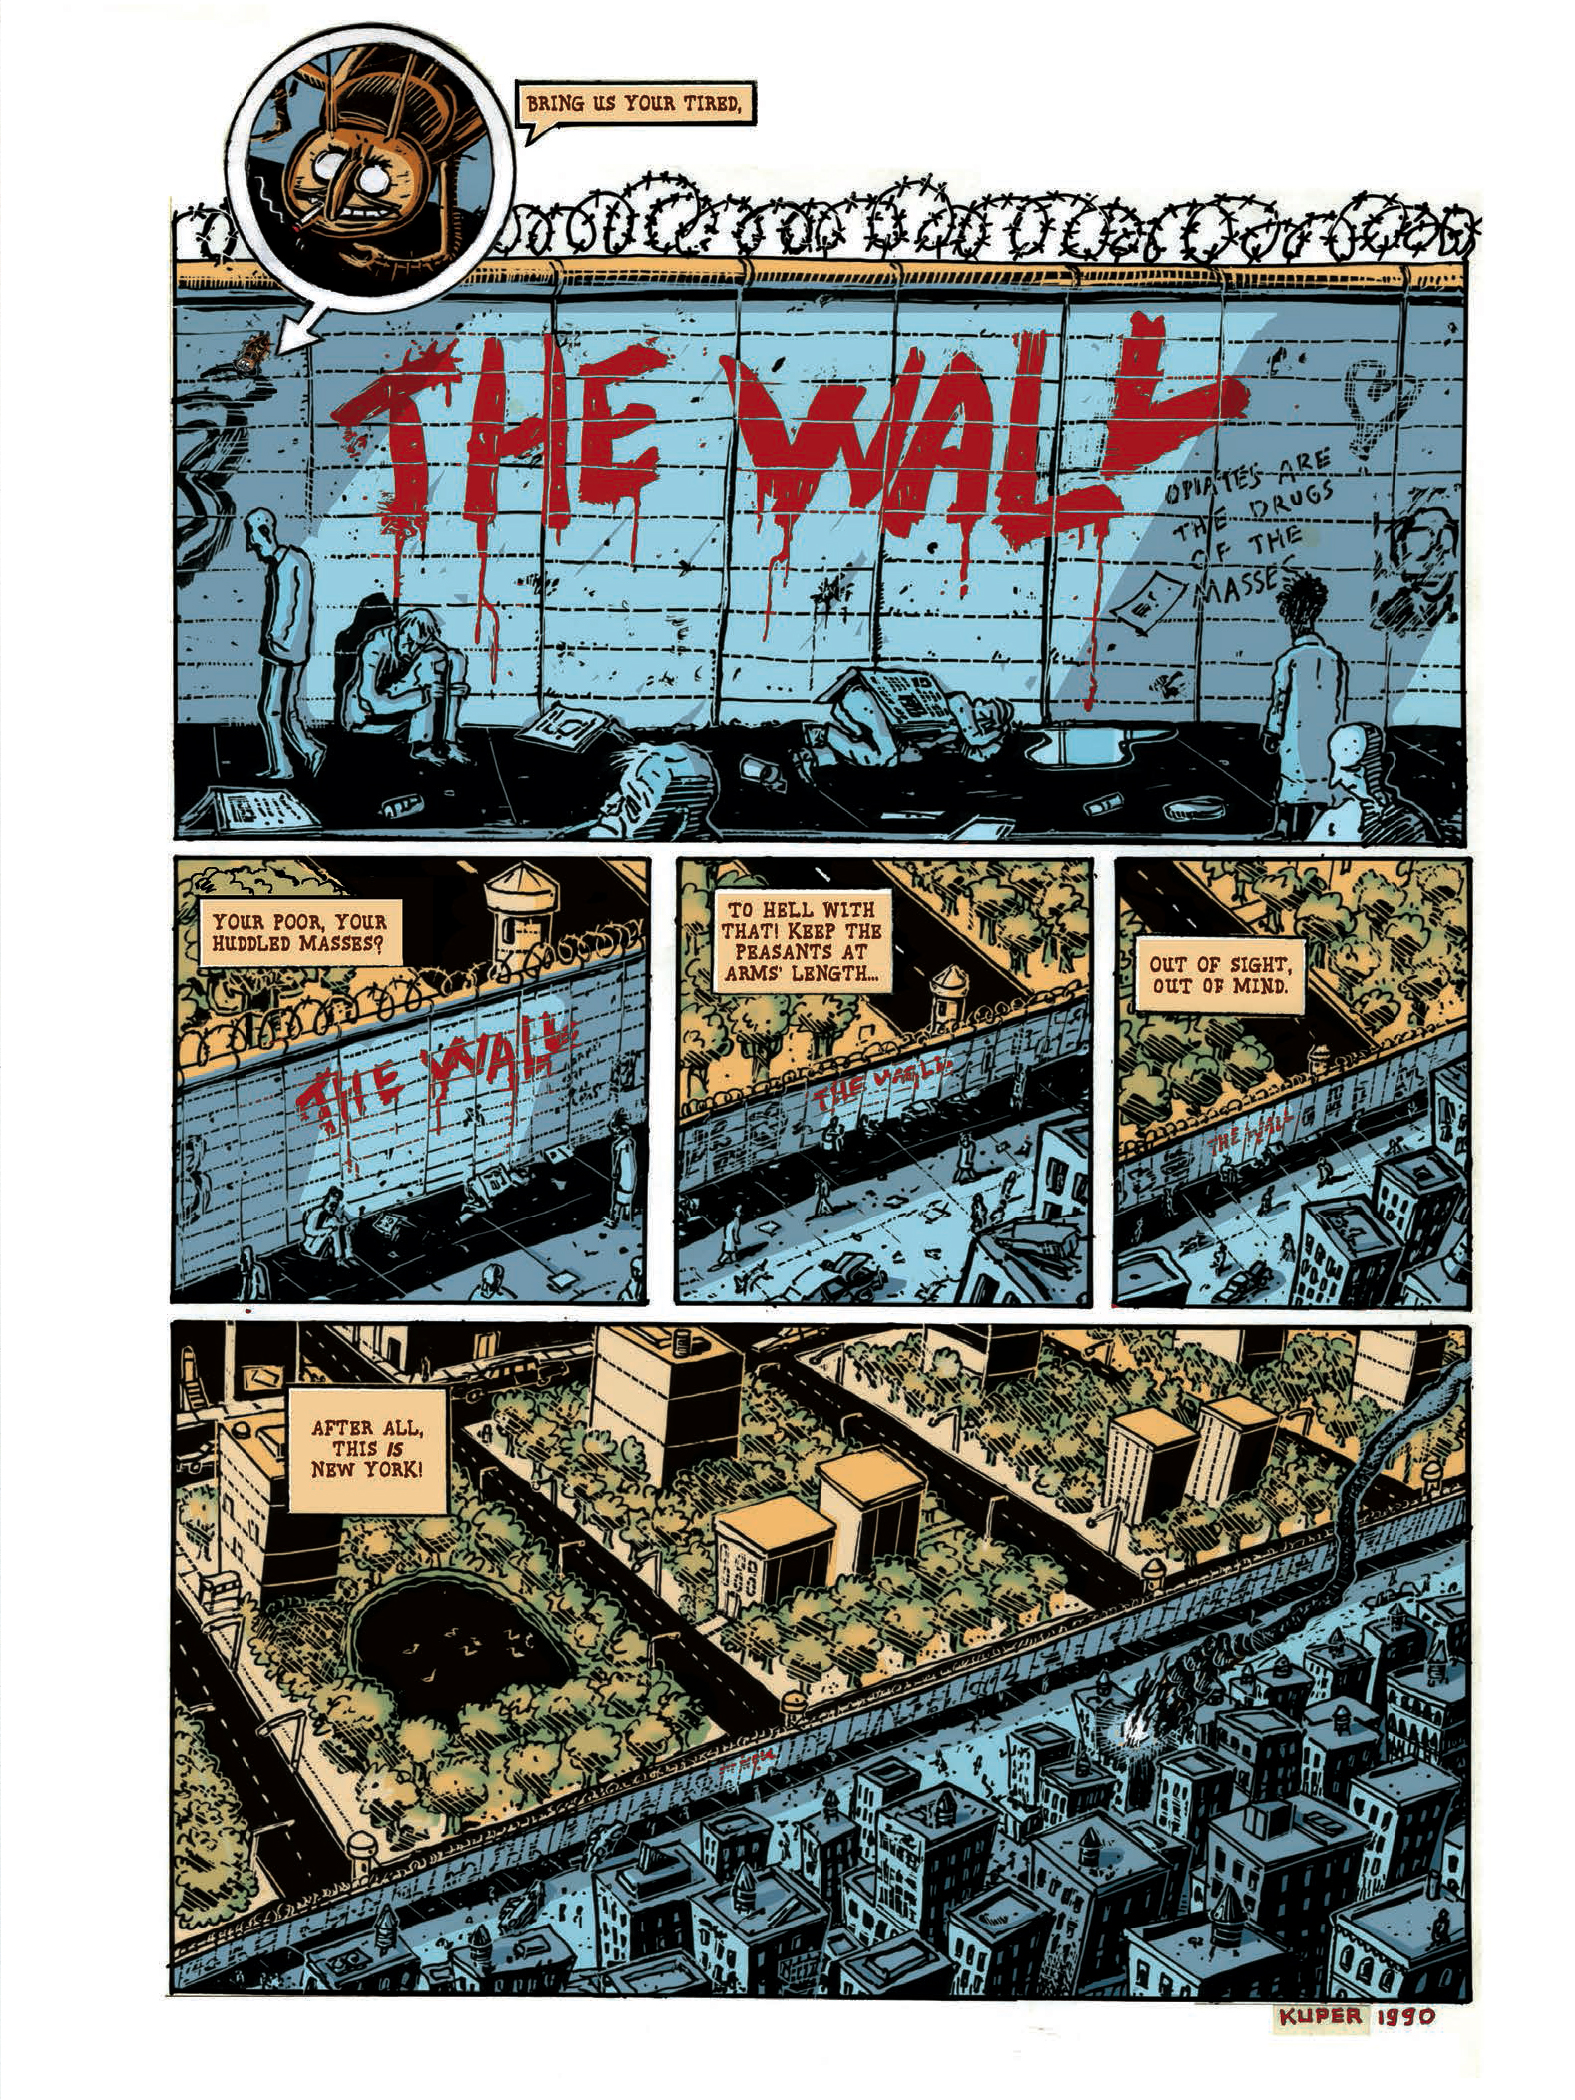 Donald Trump WAll 1990 Kuper Peter-1